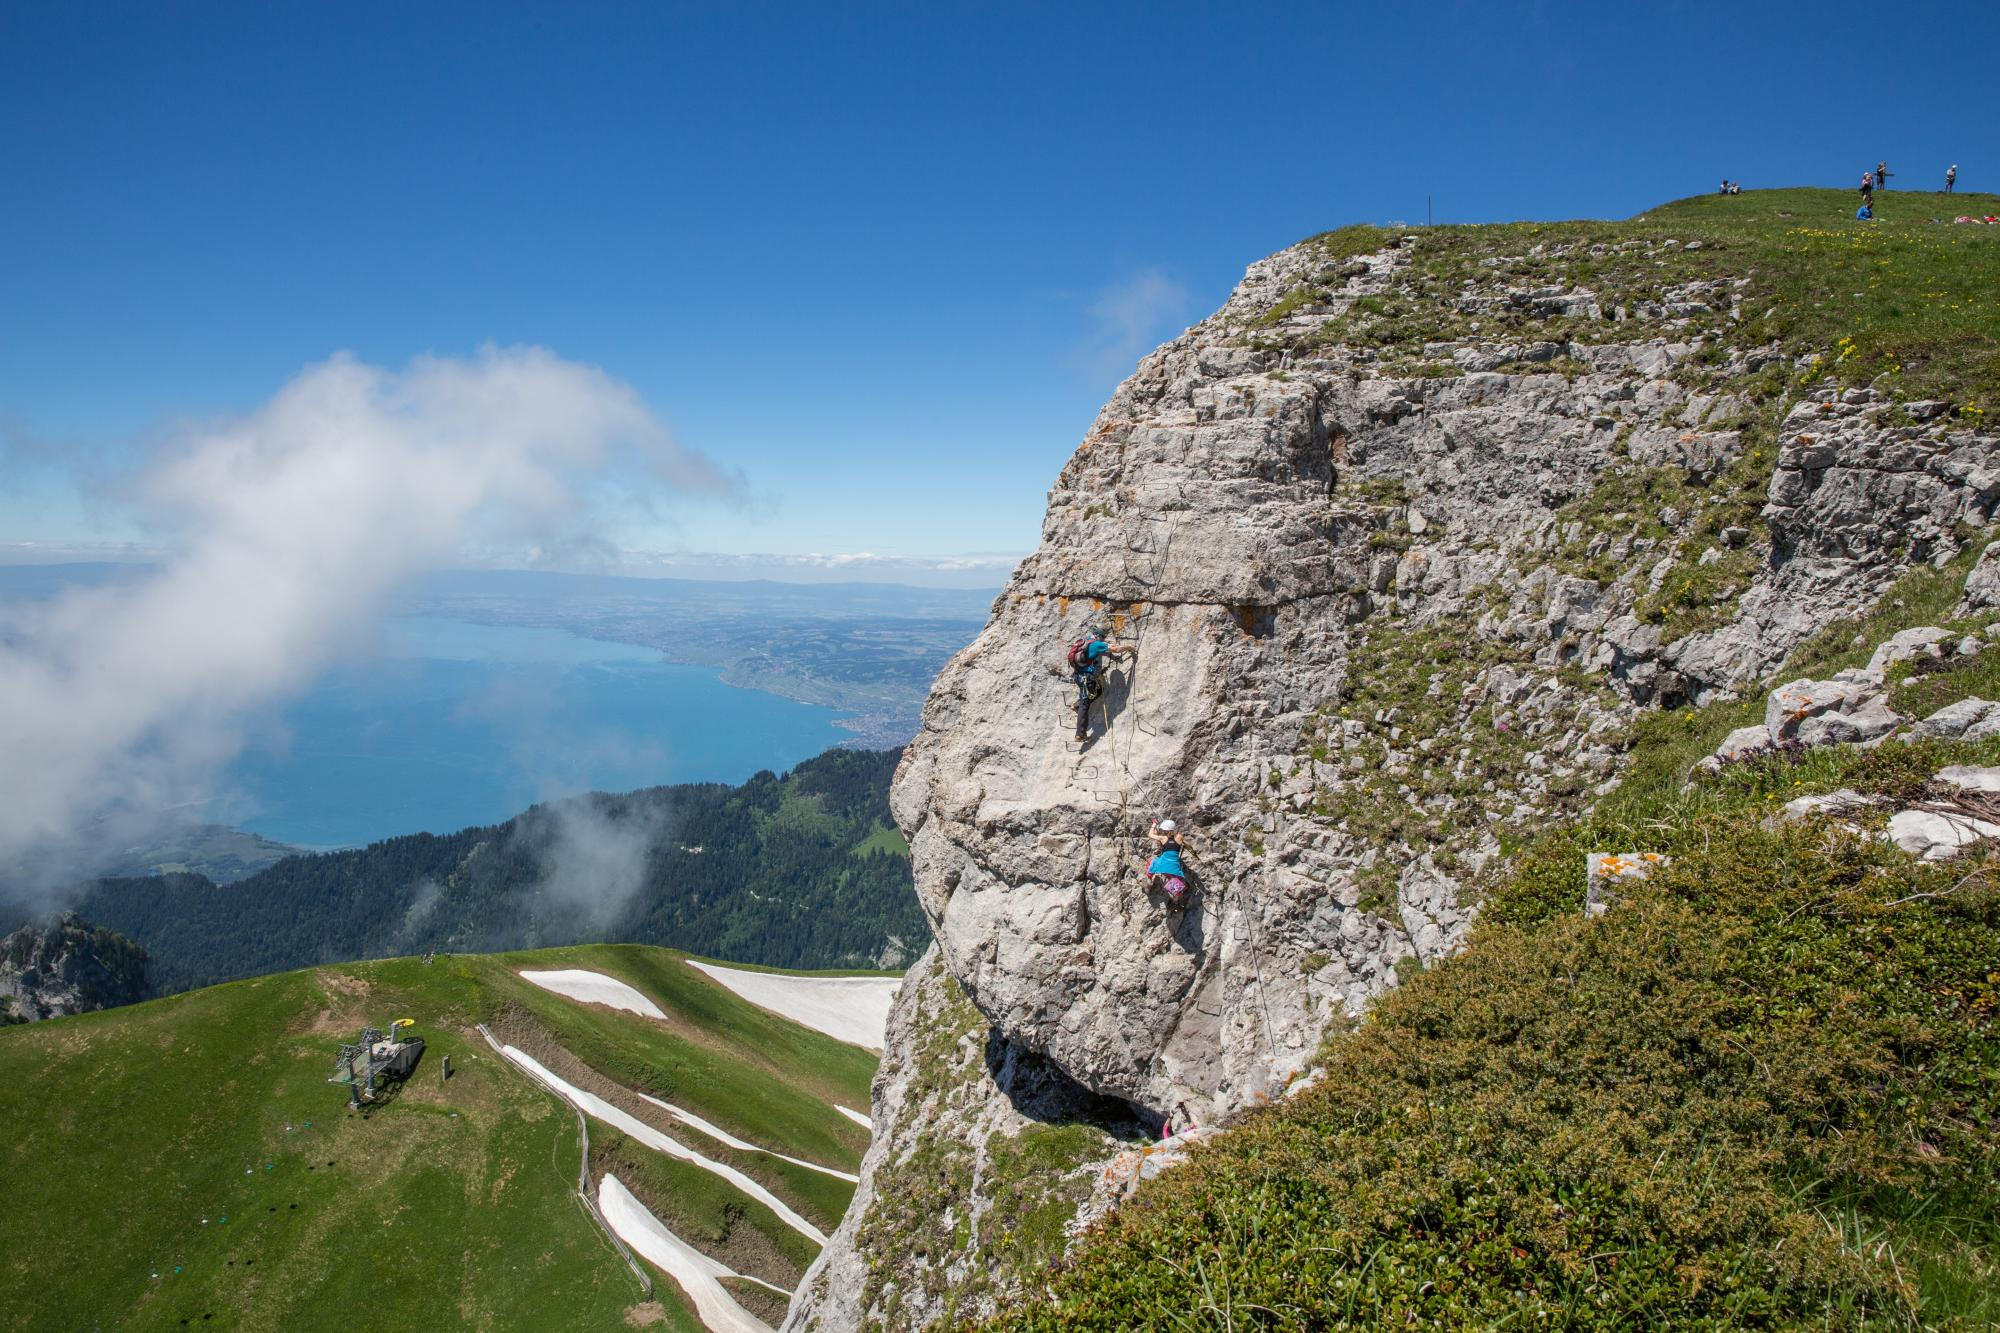 Via ferrata - Leysin